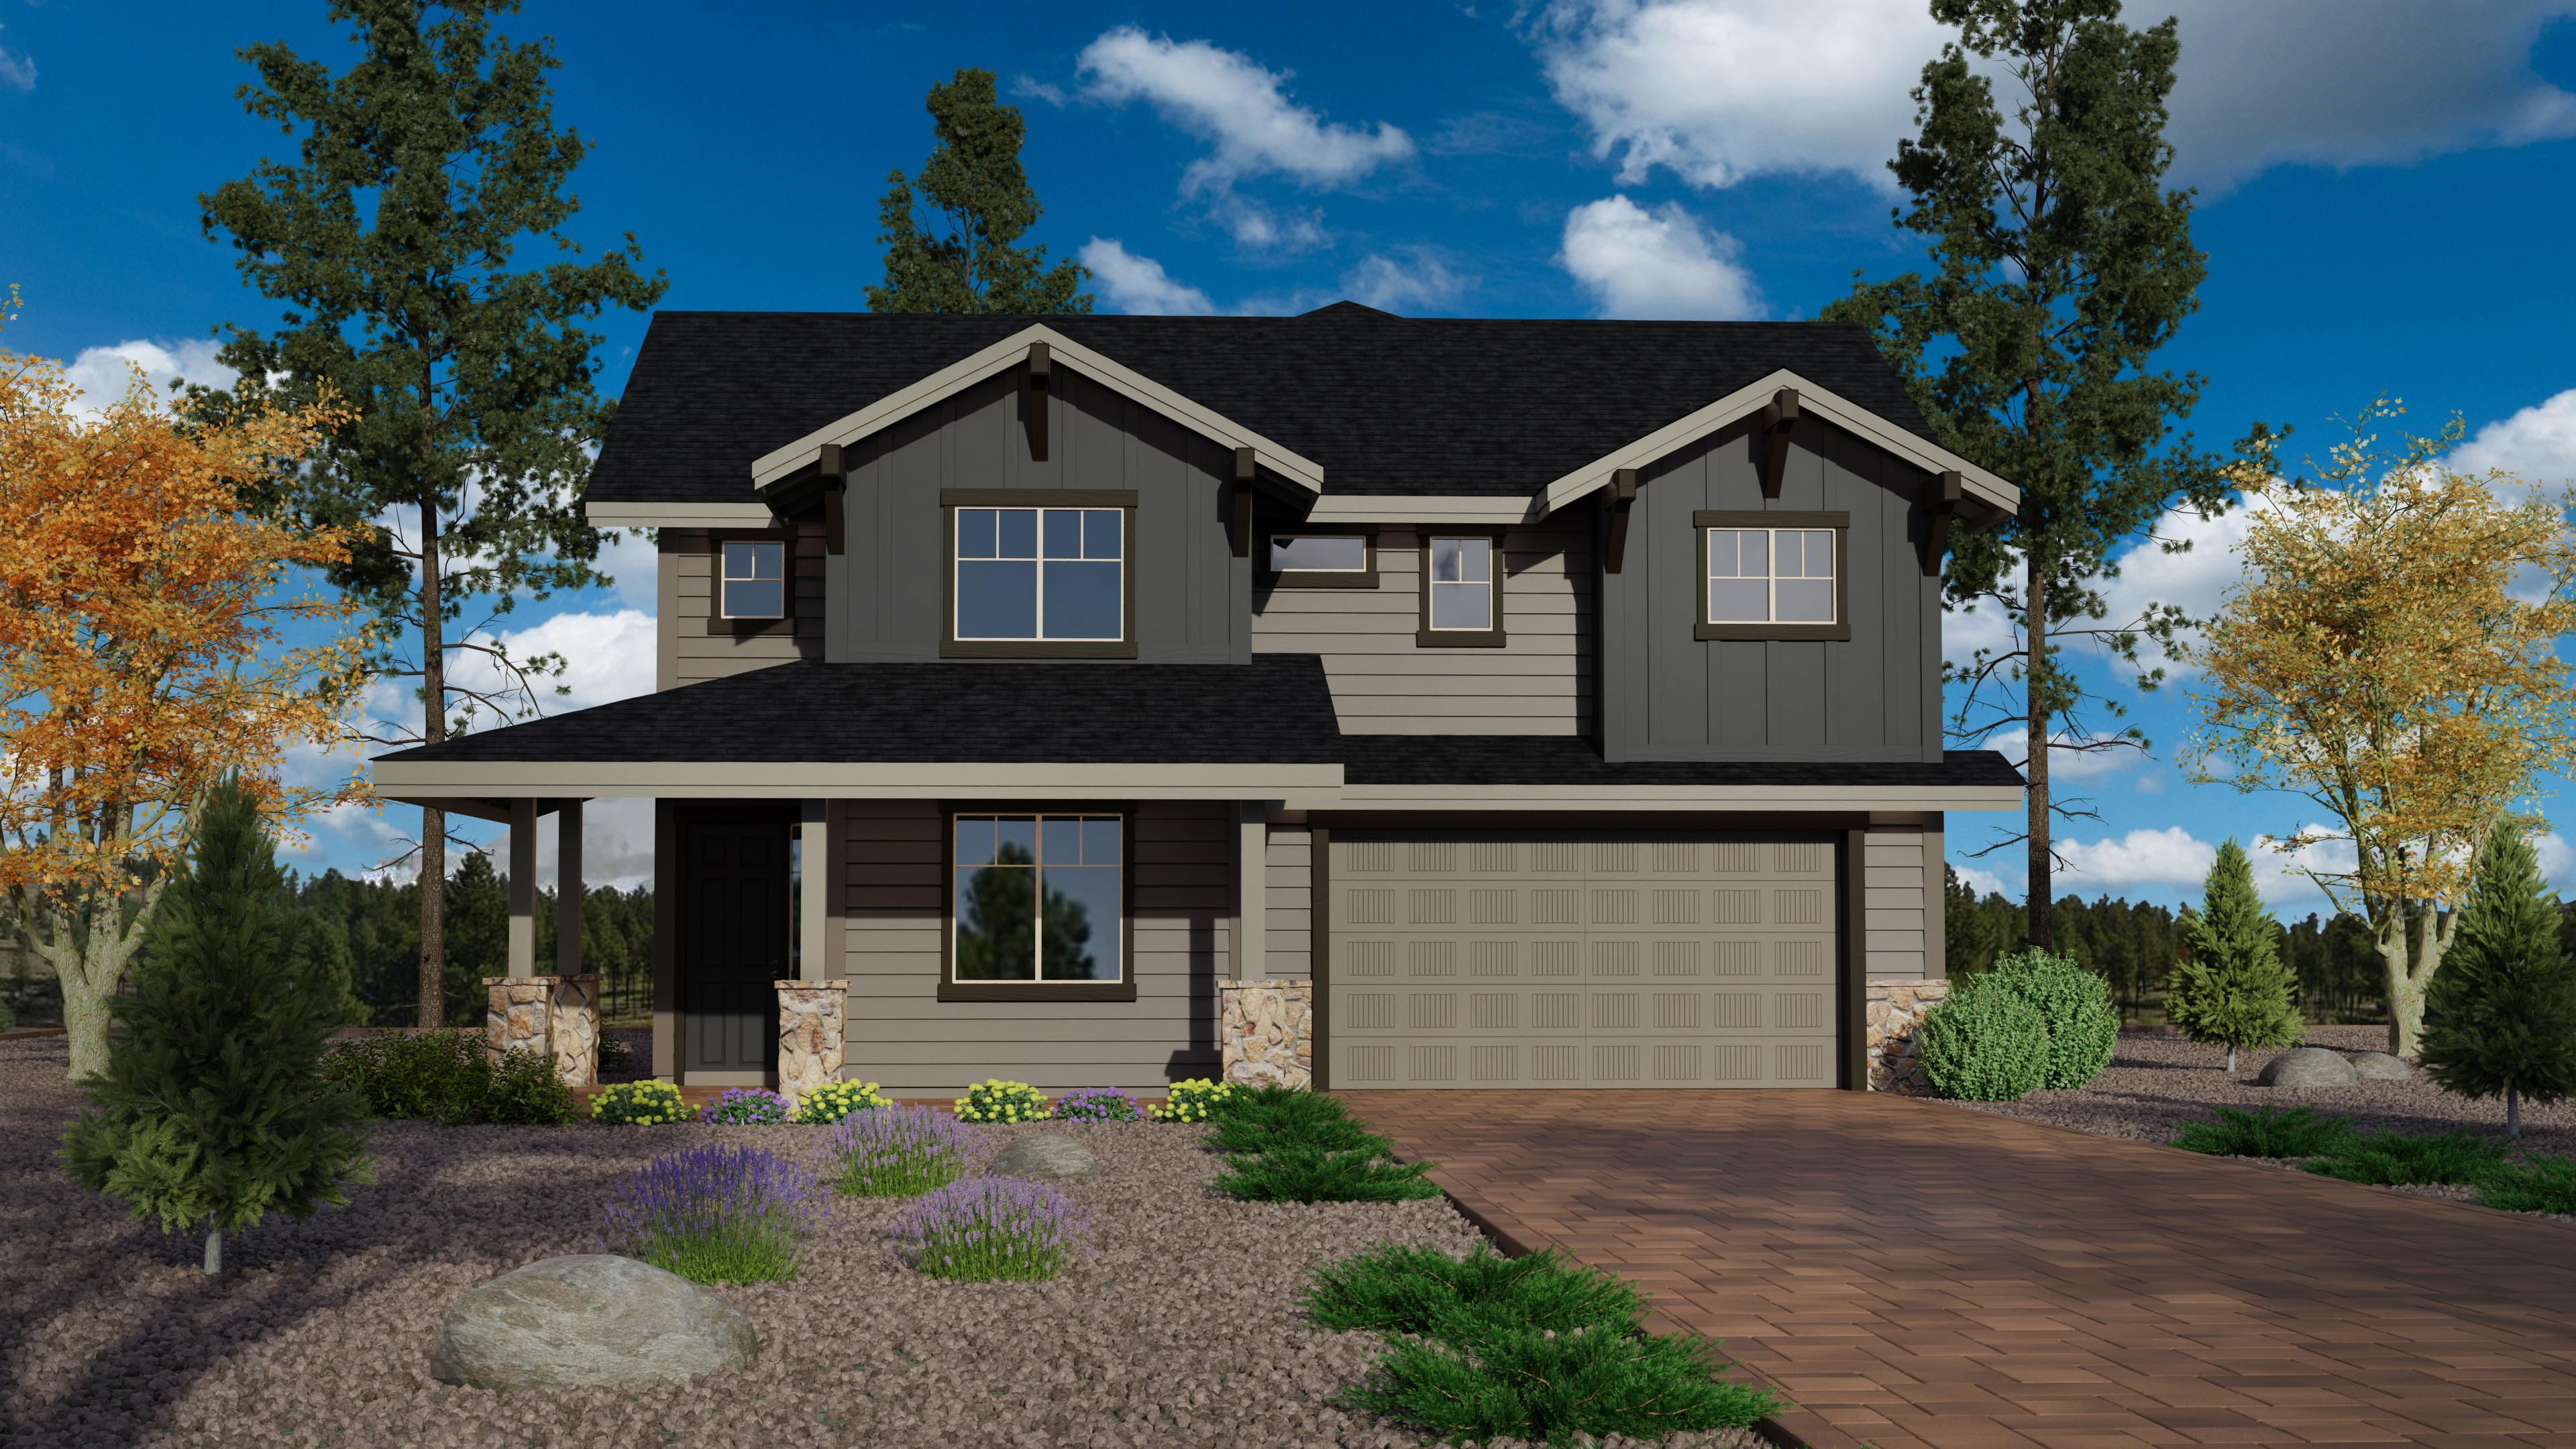 Exterior featured in the Timber Sky Plan 2443 By Capstone Homes in Flagstaff, AZ